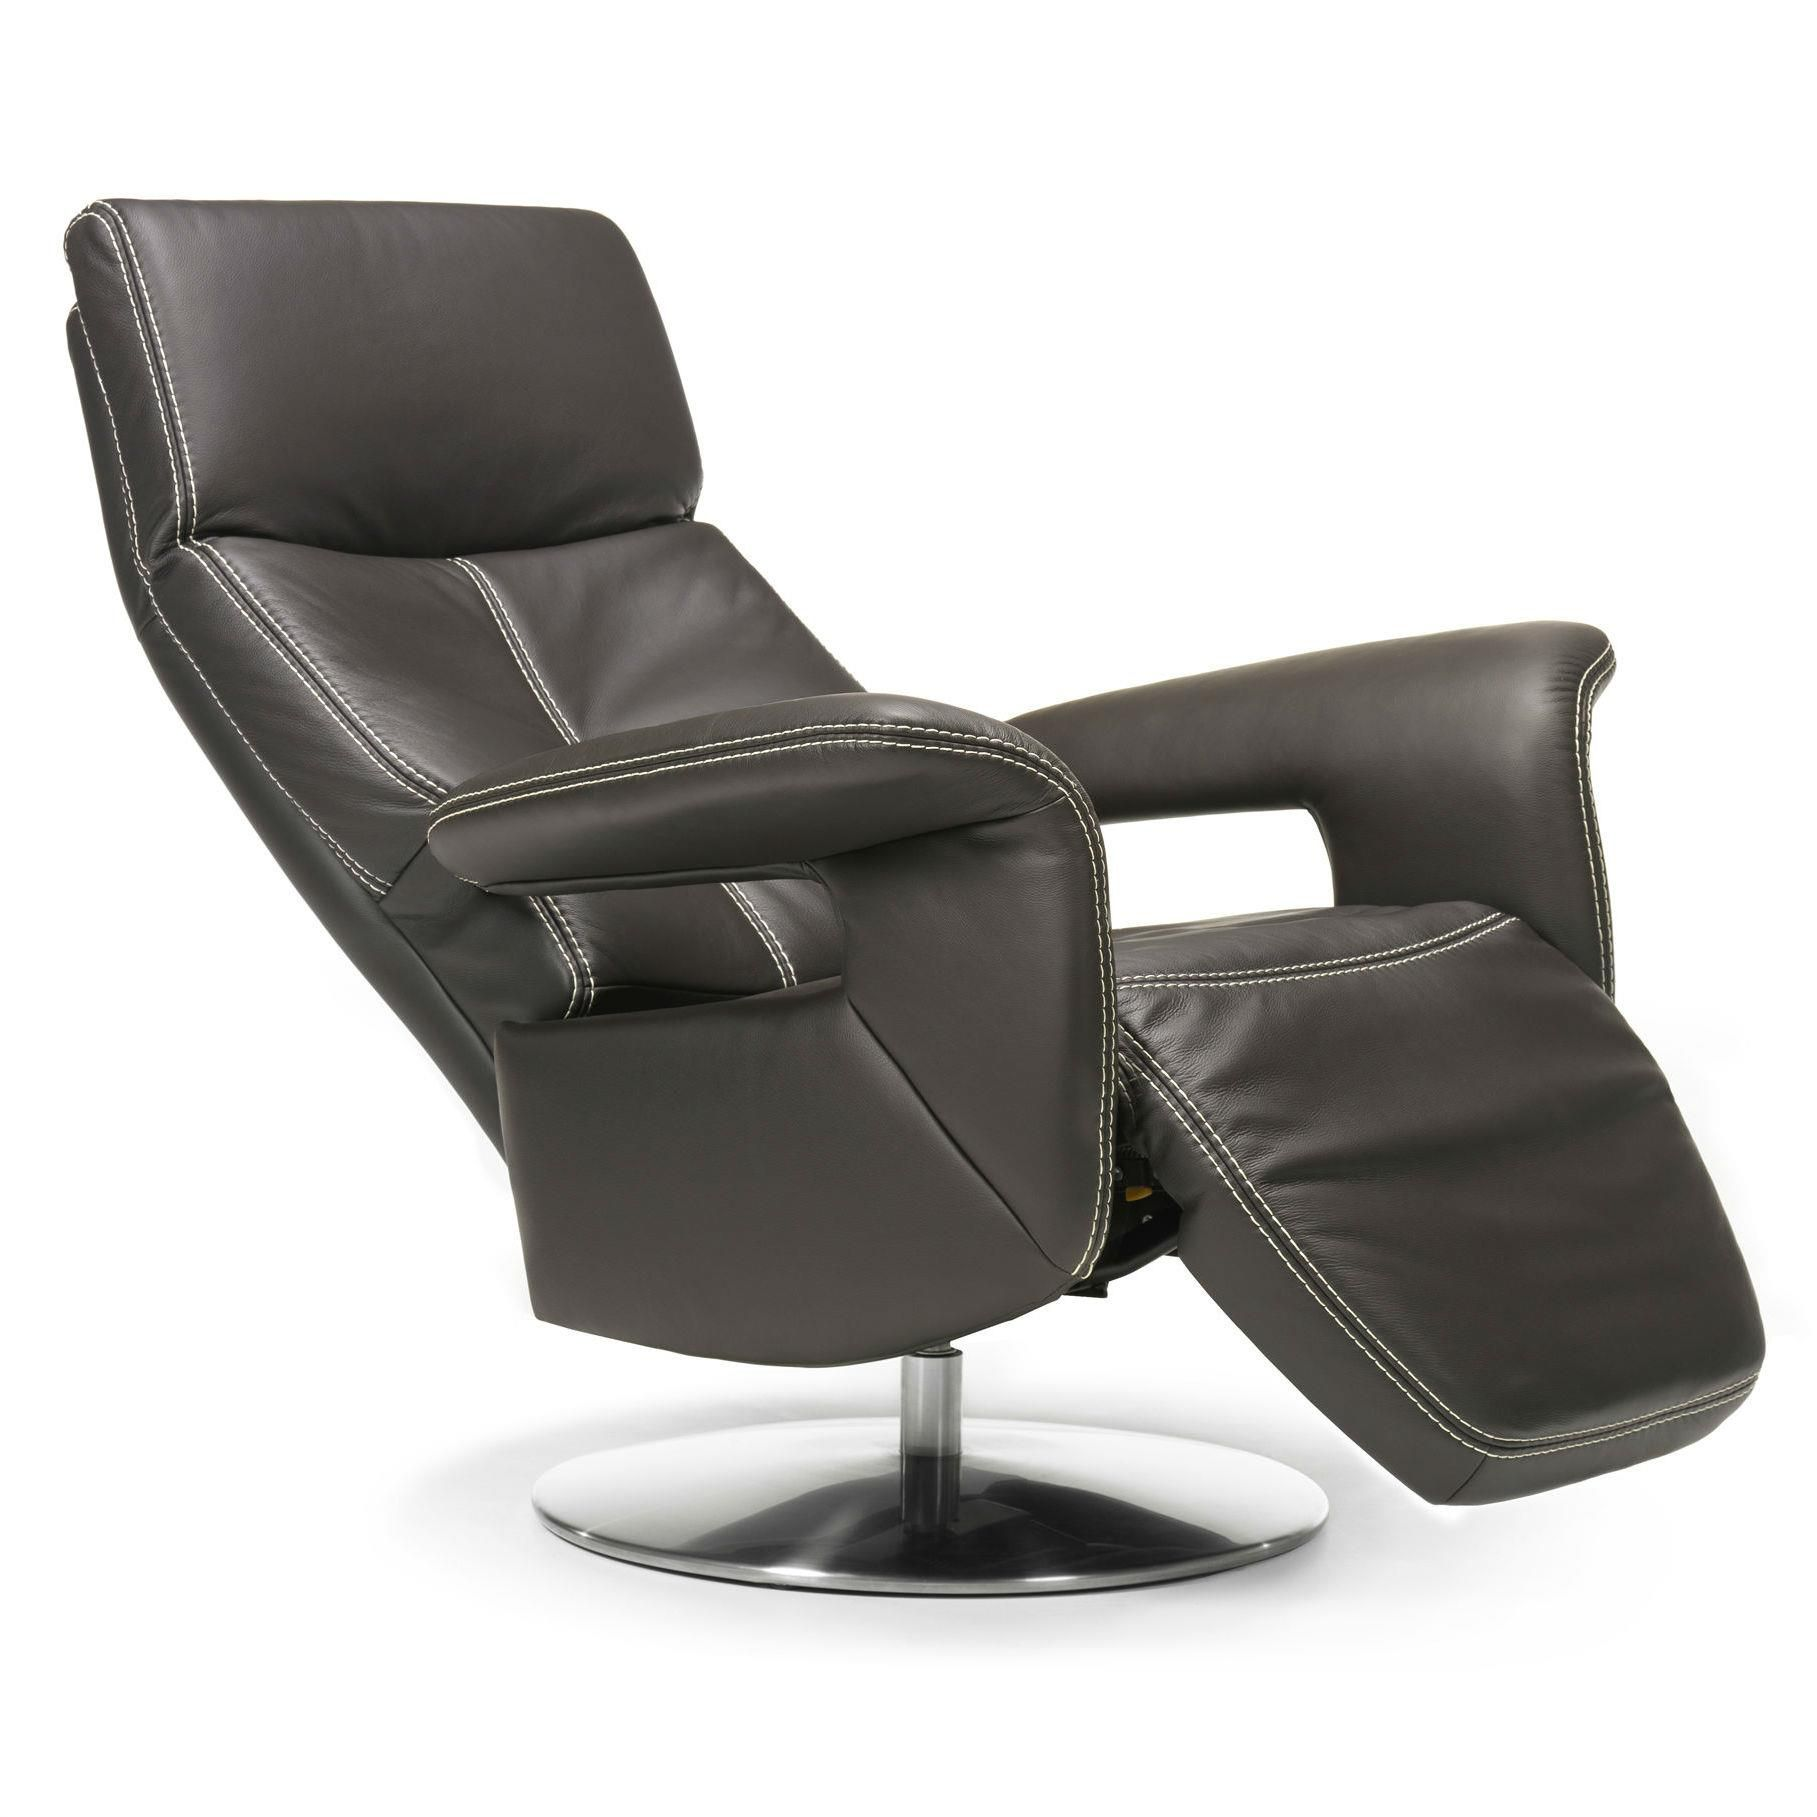 Modern Recliner Chair U2013 For Many People, A Place To Sit, Relax And Unwind  At The End Of The Day Is Crucial To Relieve Stress And Preparing For The  Next ...